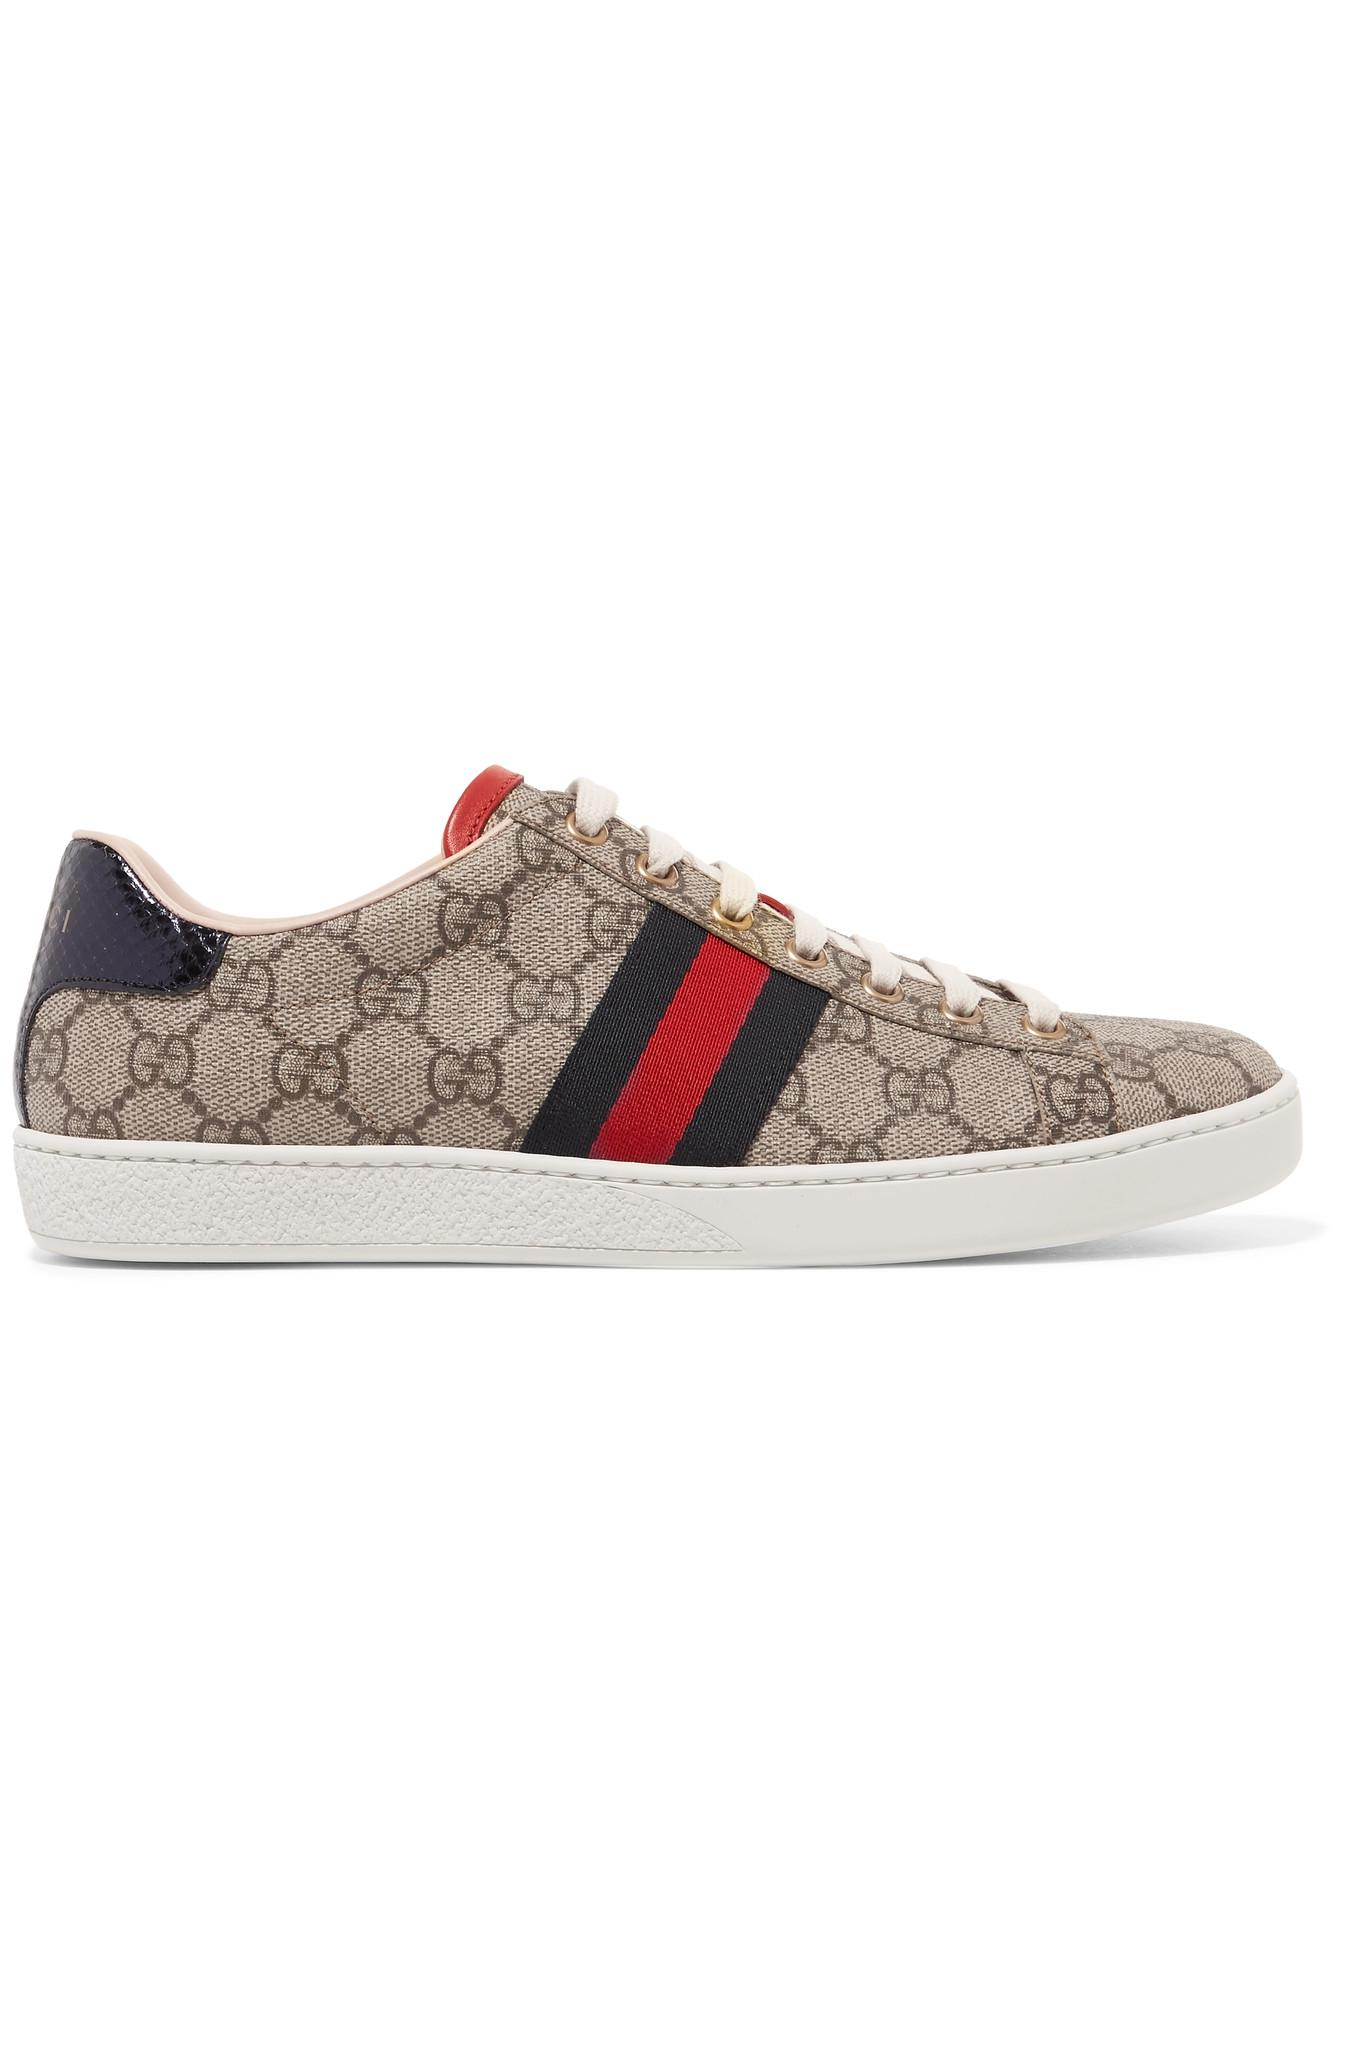 Gucci. Women s Ace Metallic Watersnake-trimmed Printed Coated-canvas  Trainers 2db9461beace5